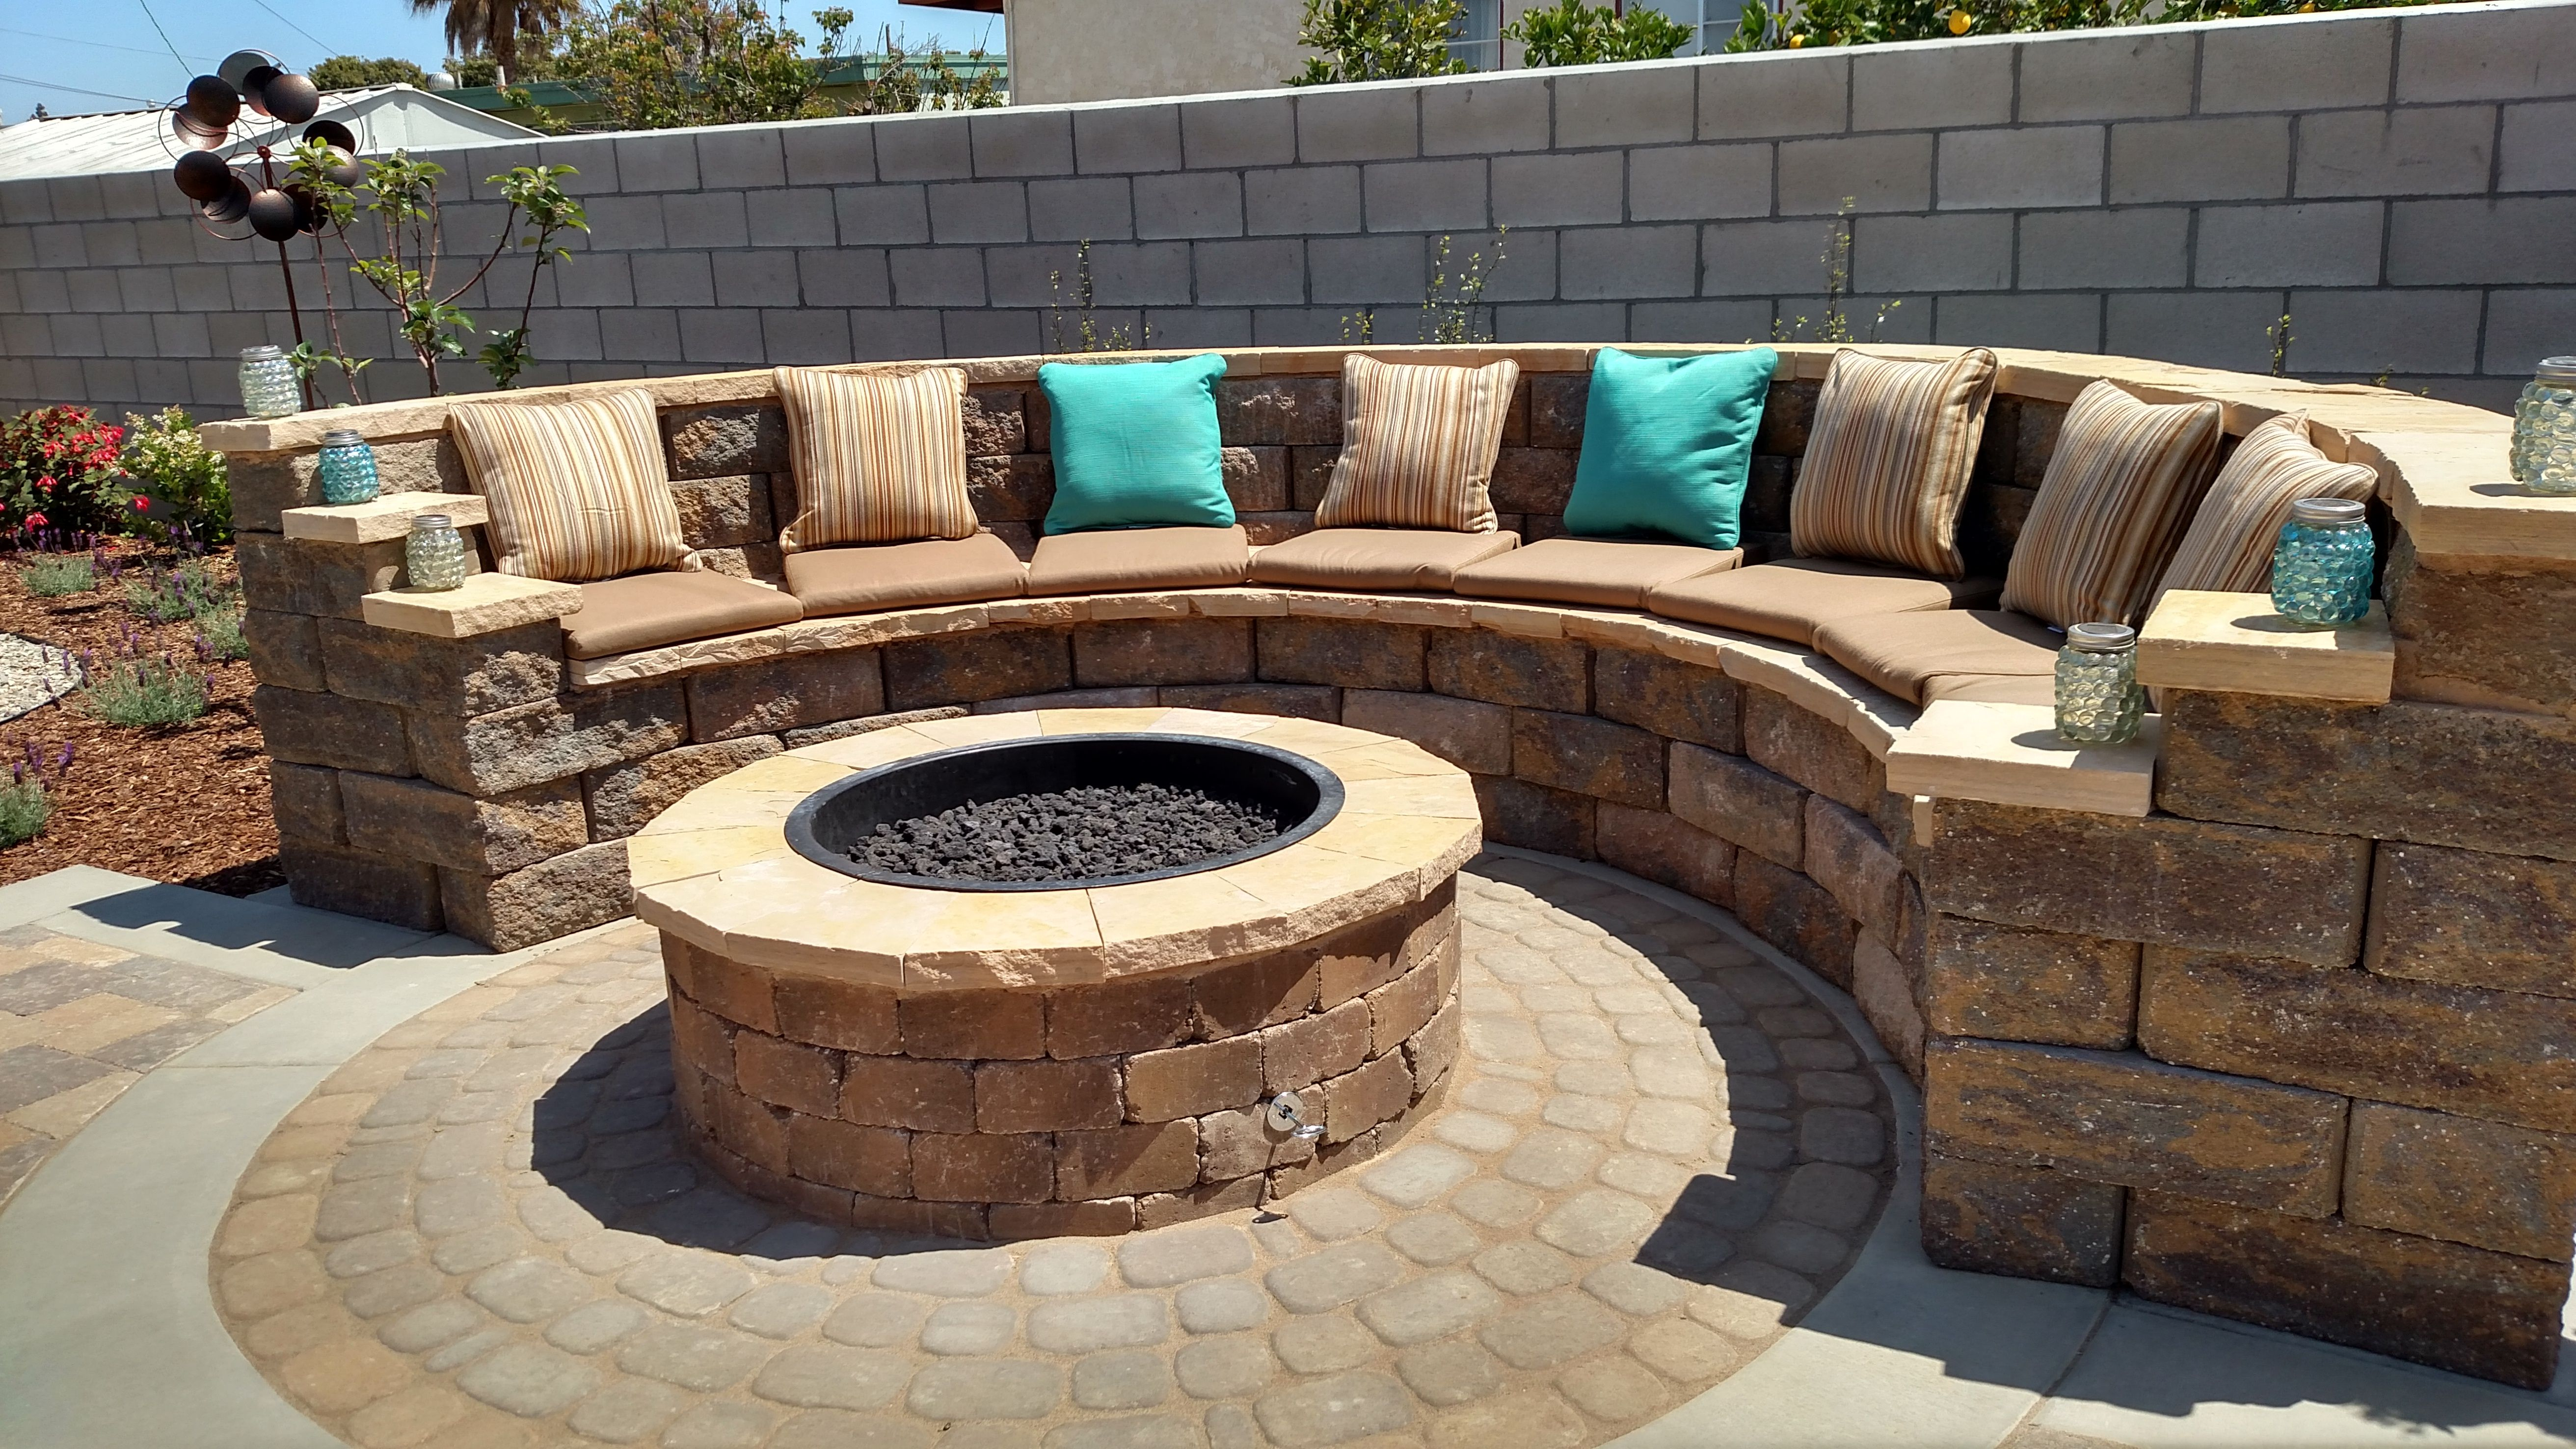 3f553a95817f76a36e3a6249bcf22463 Top Result 50 Awesome Cost Of Outdoor Fireplace Picture 2018 Zat3